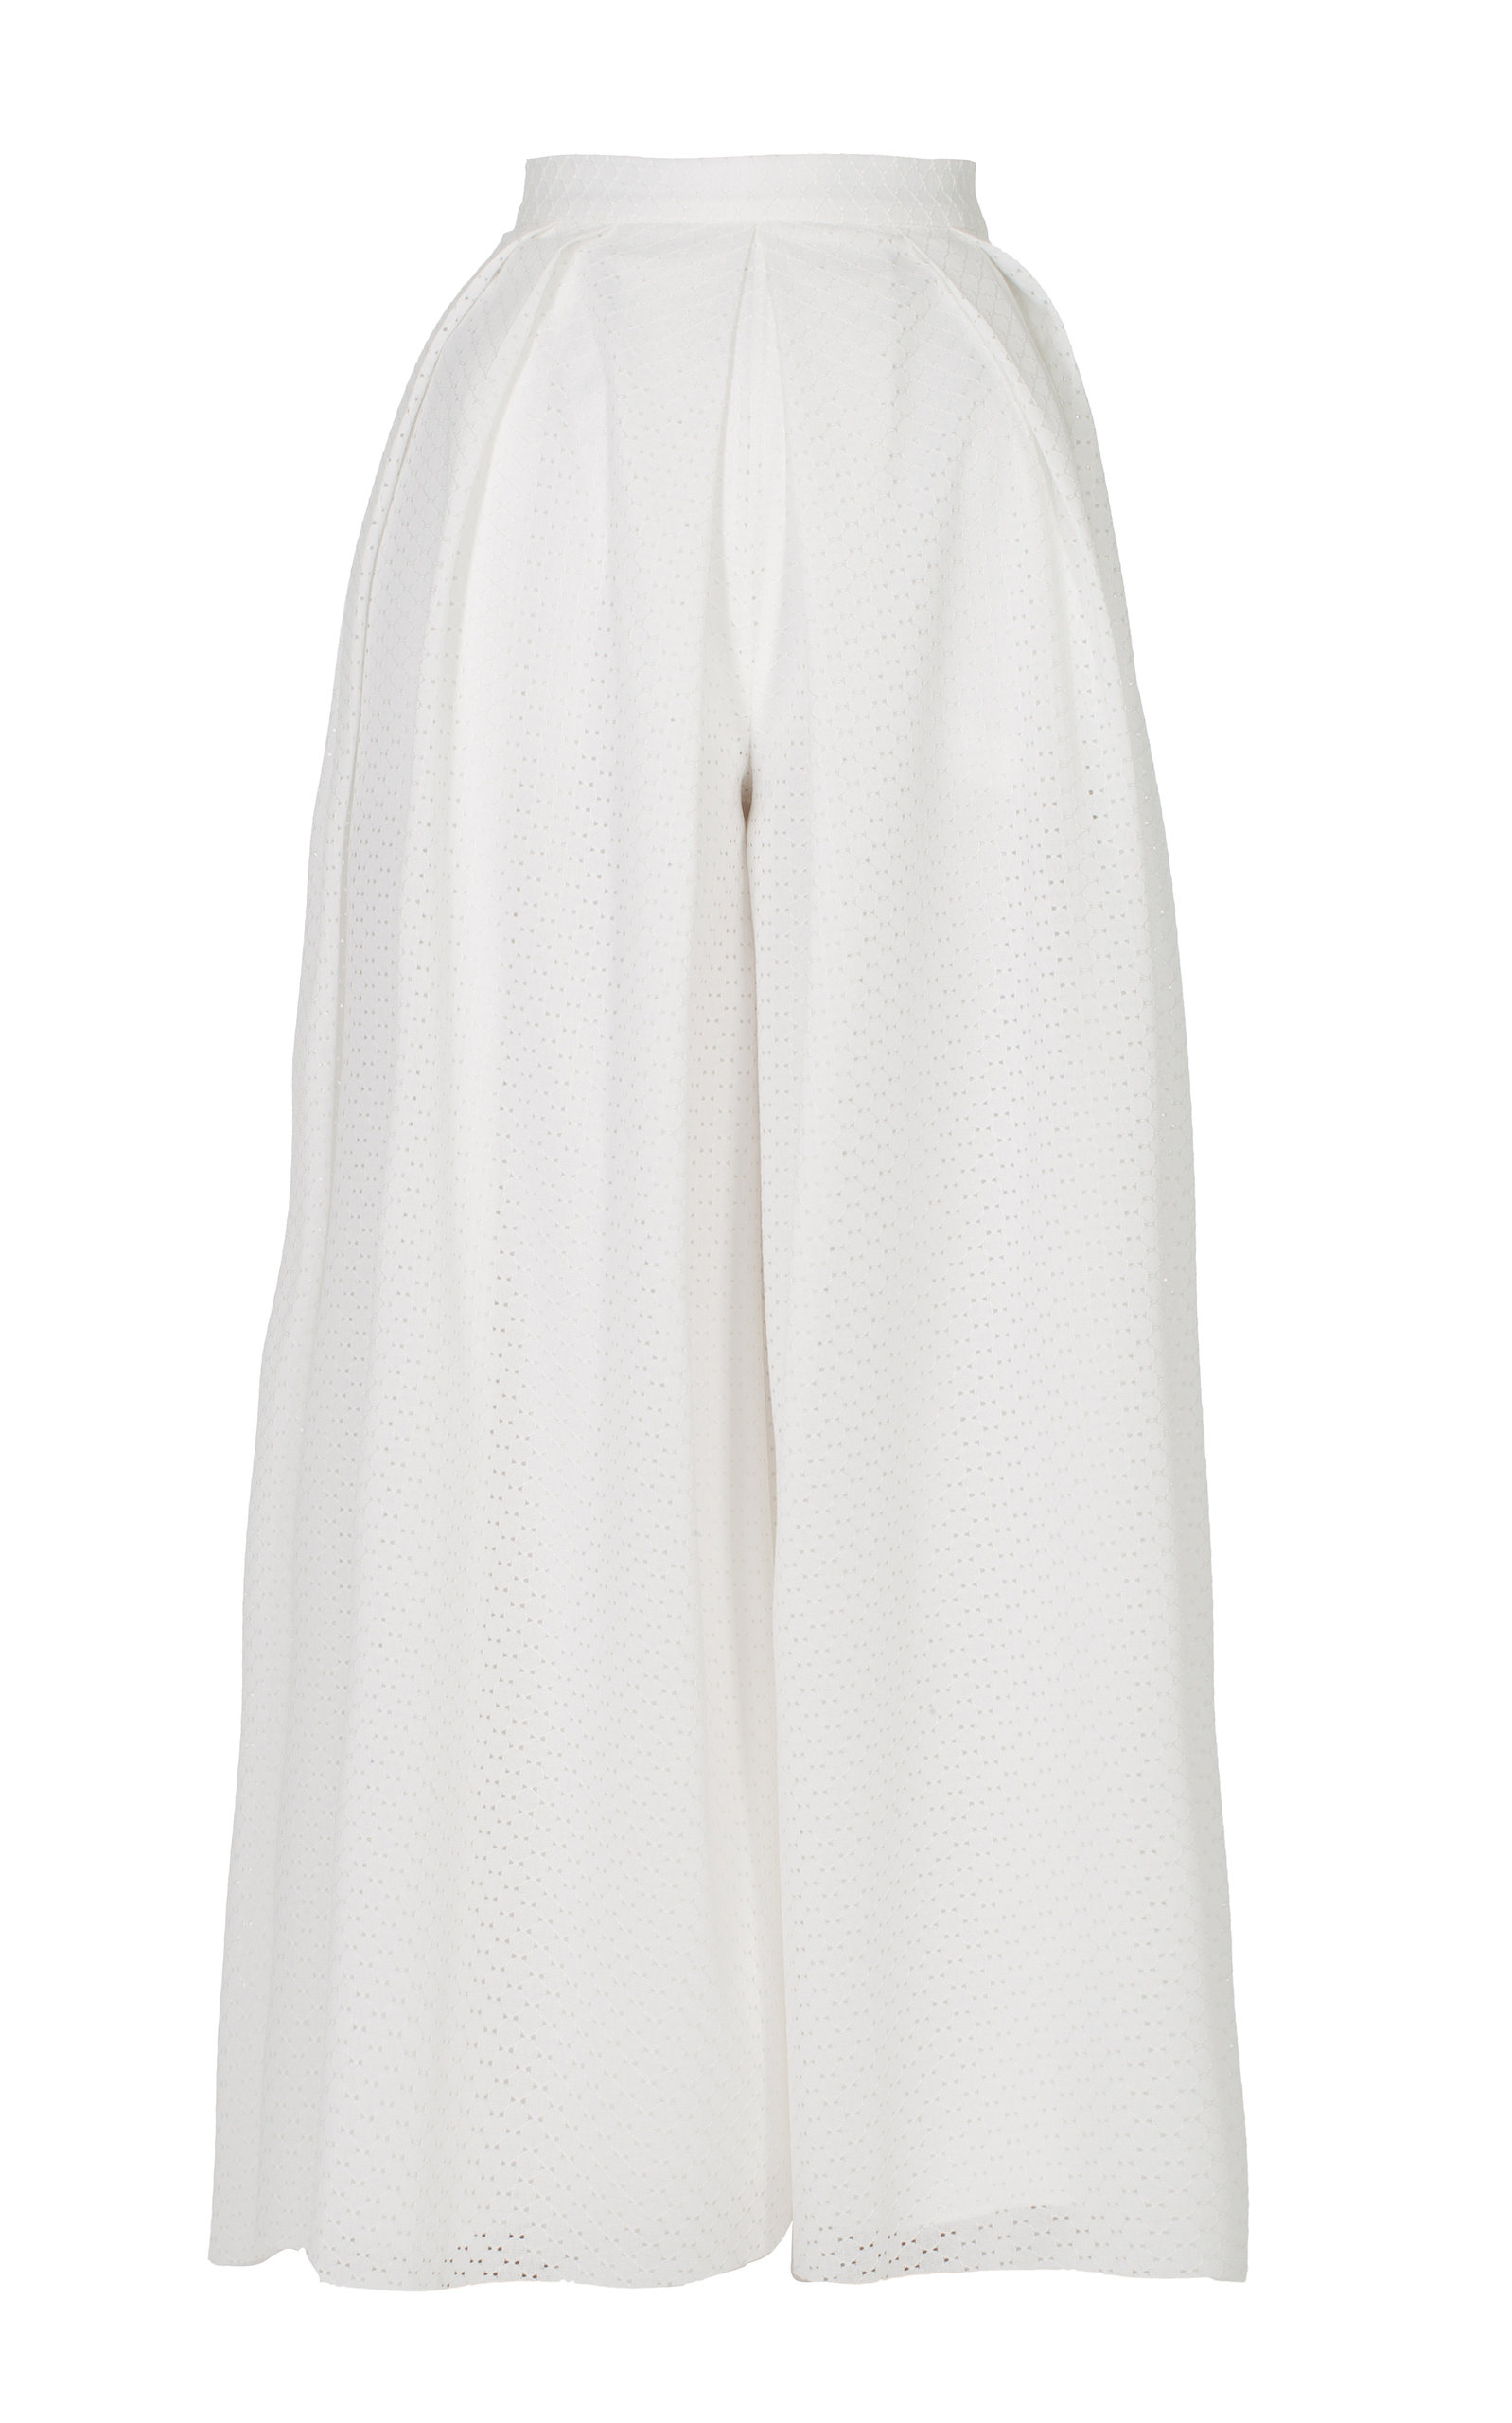 ANATOMI Magnolia Pleated High Waisted Pant in White